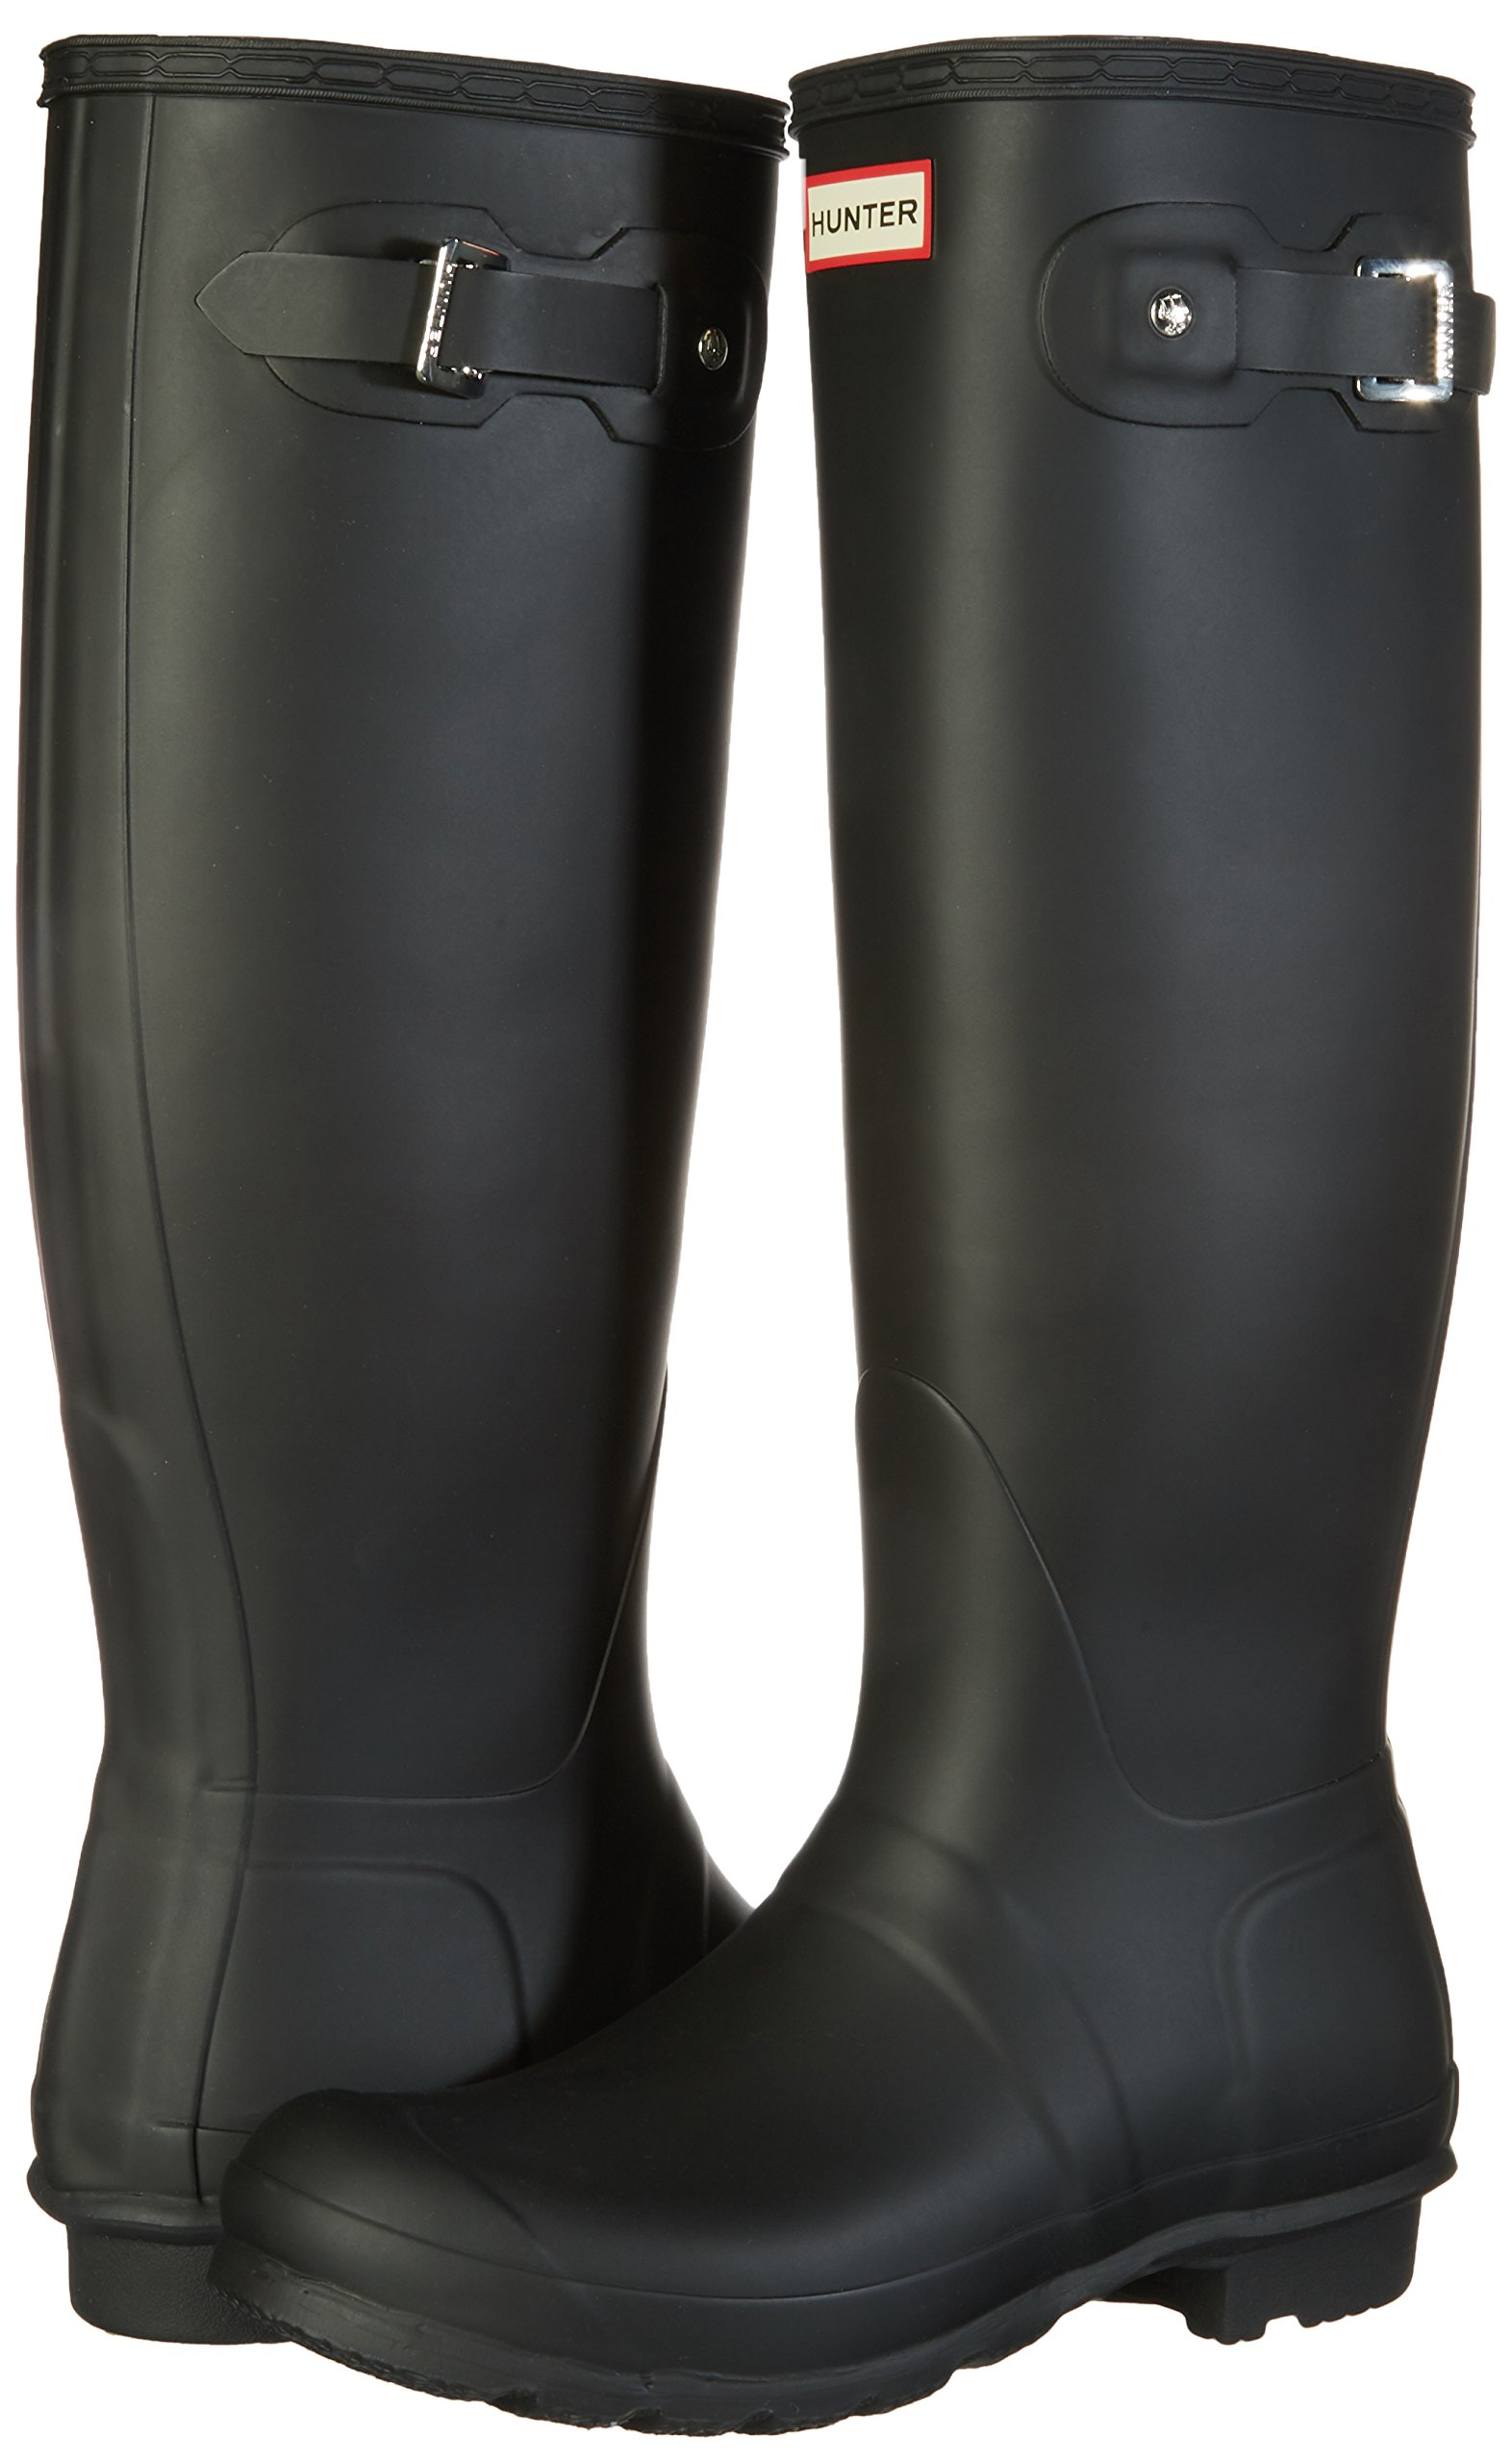 Hunter Women's Original Tall Black Rain Boots - 9 B(M) US by Hunter (Image #6)